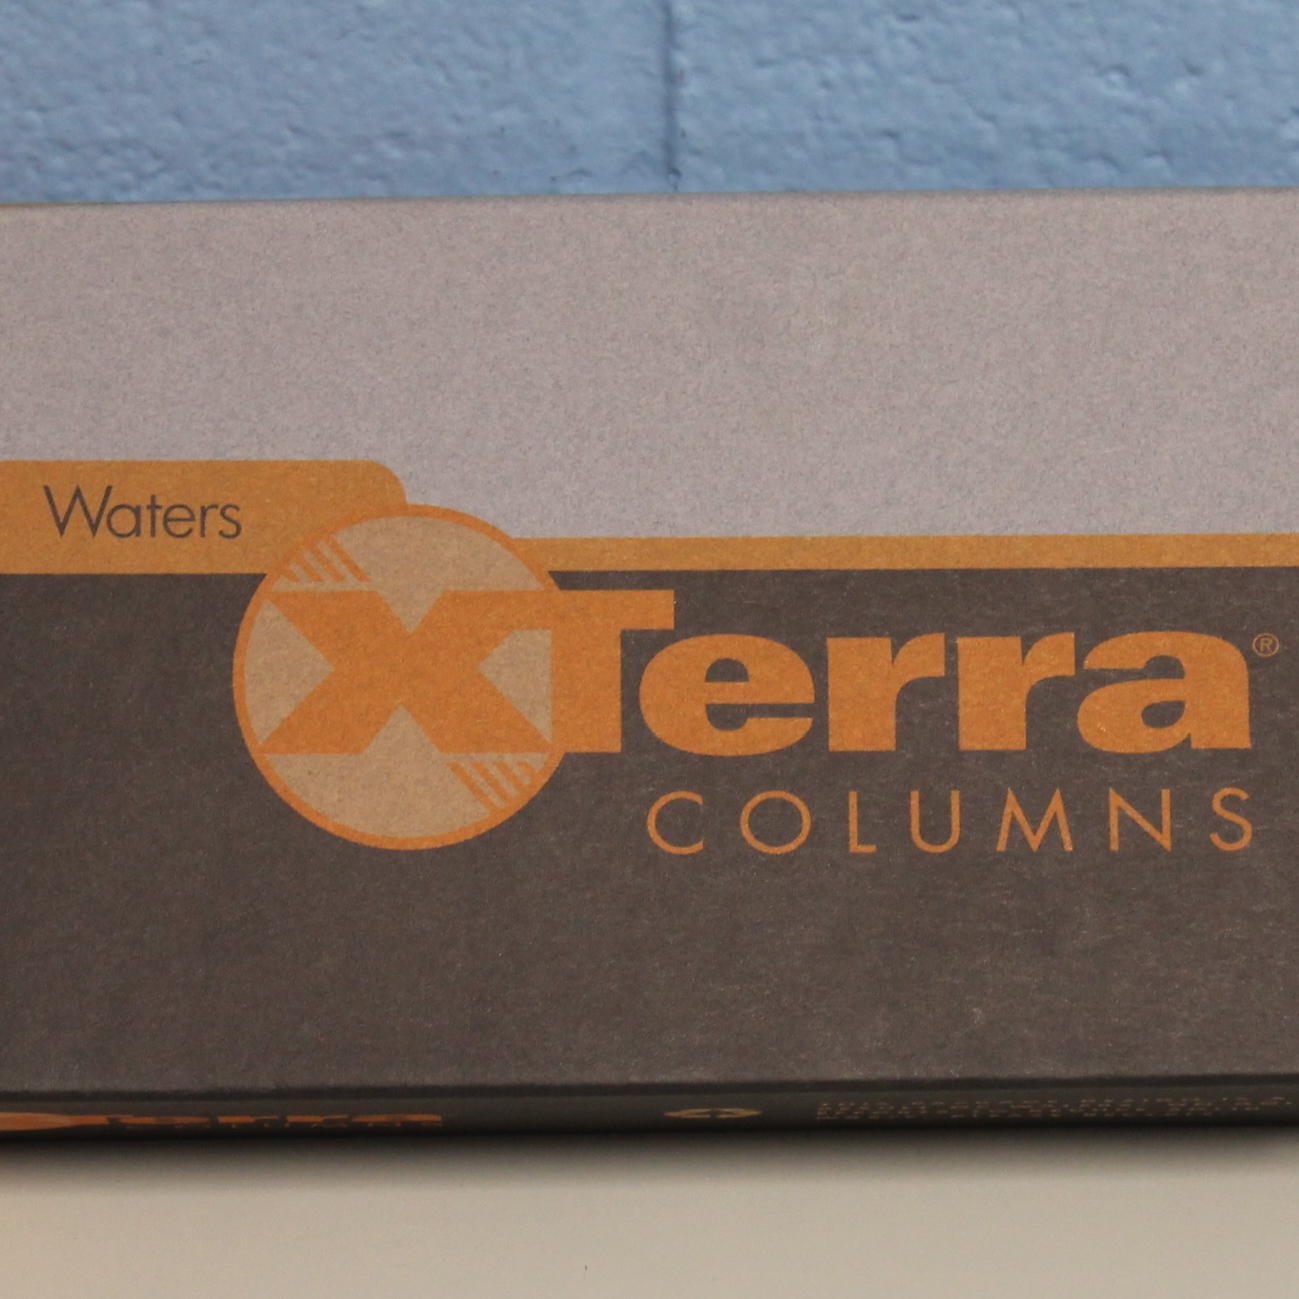 XTerra Shield RP8 Column 125 3.5 m, 4.6 mm x 30 mm Name